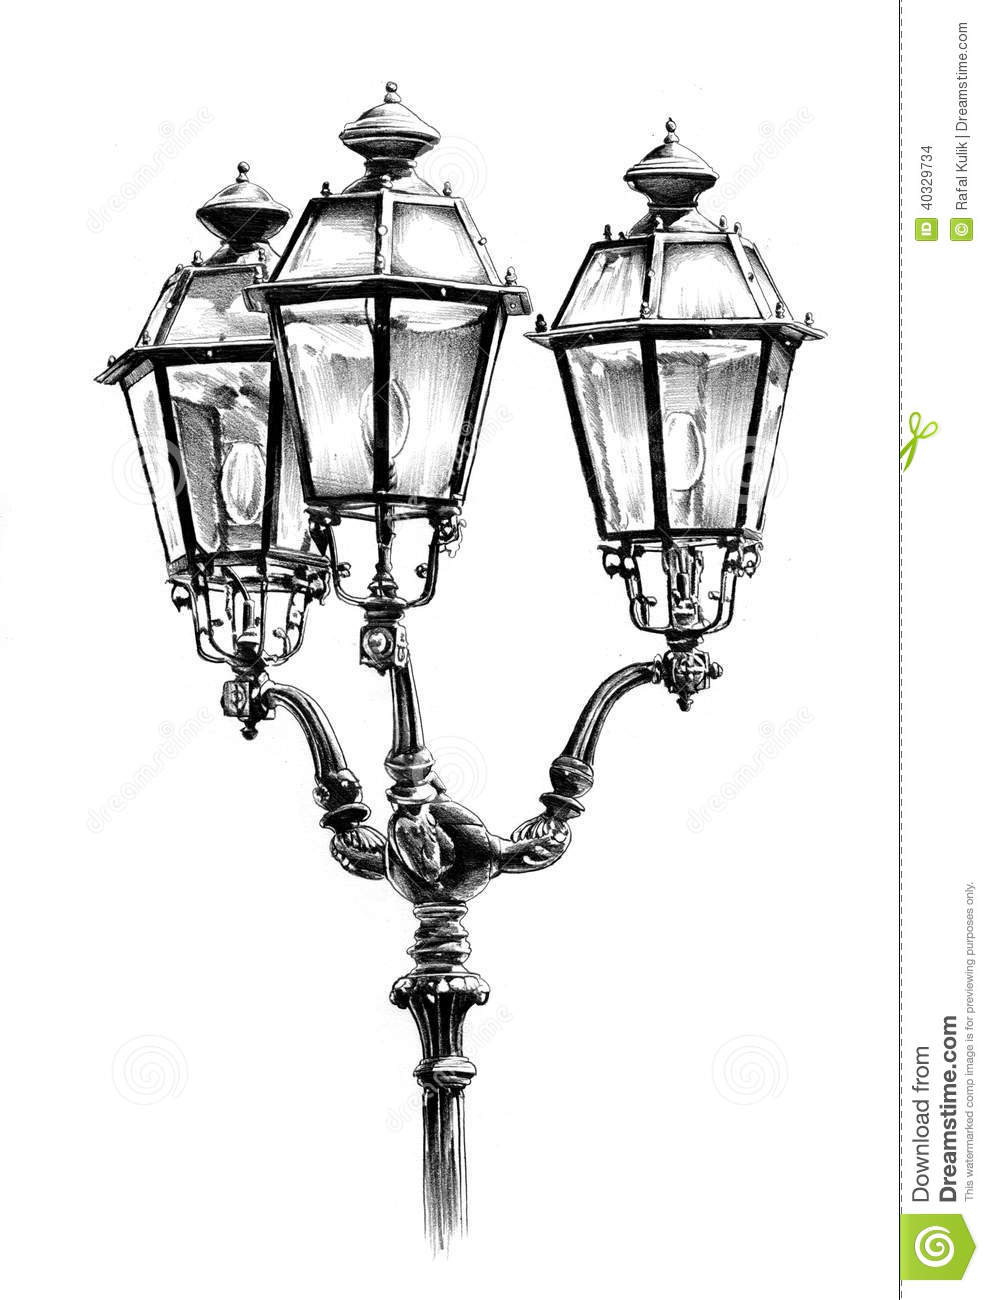 Antique Street Lantern Drawing Handmade Hand Lamp Royalty Free Stock Photo Download